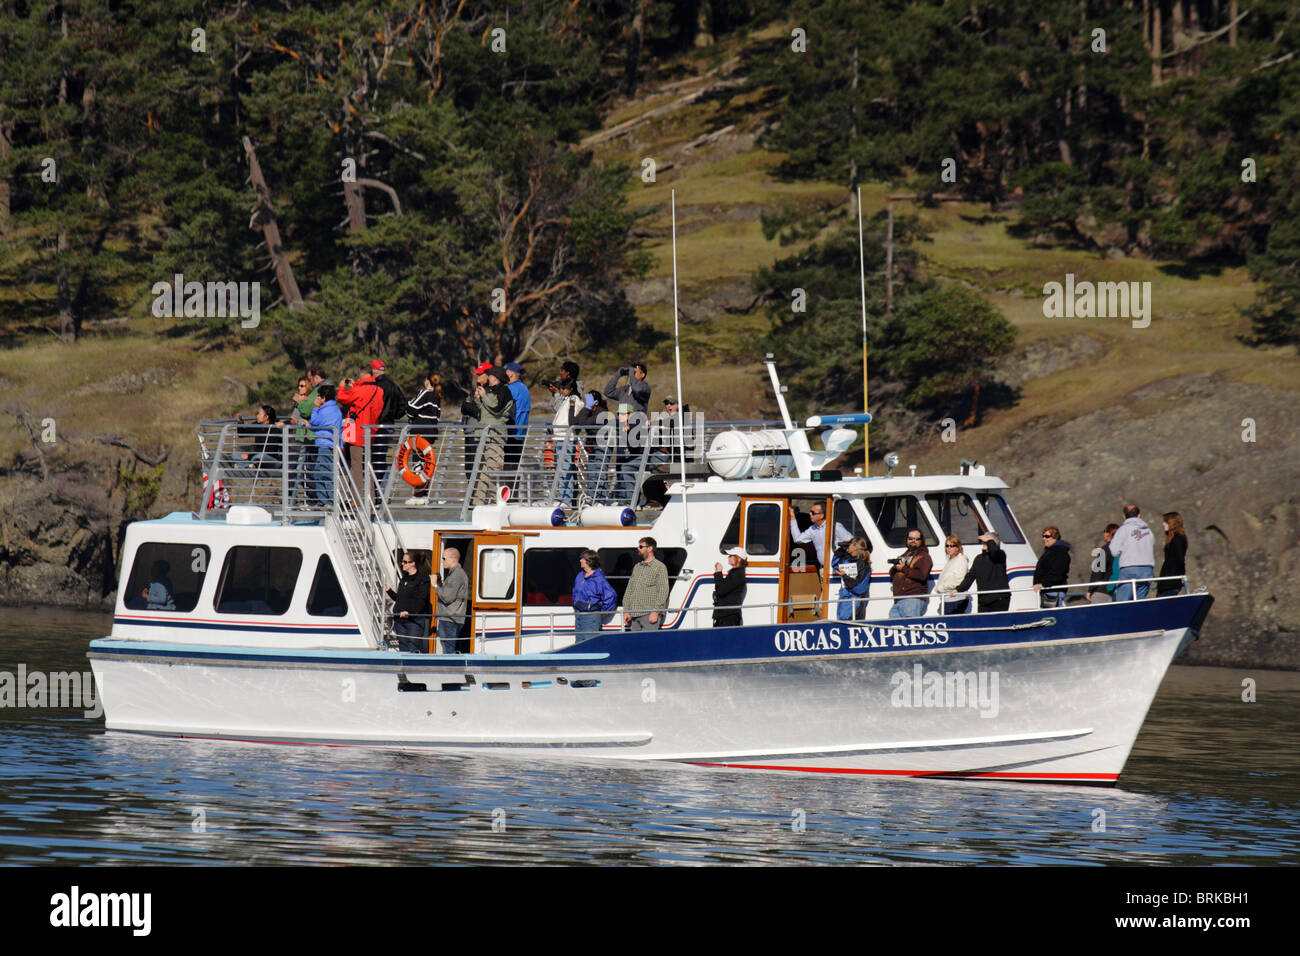 Whale watching tour boat looking for Orca whales in Juan de Fuca Strait-Victoria, British Columbia, Canada. - Stock Image